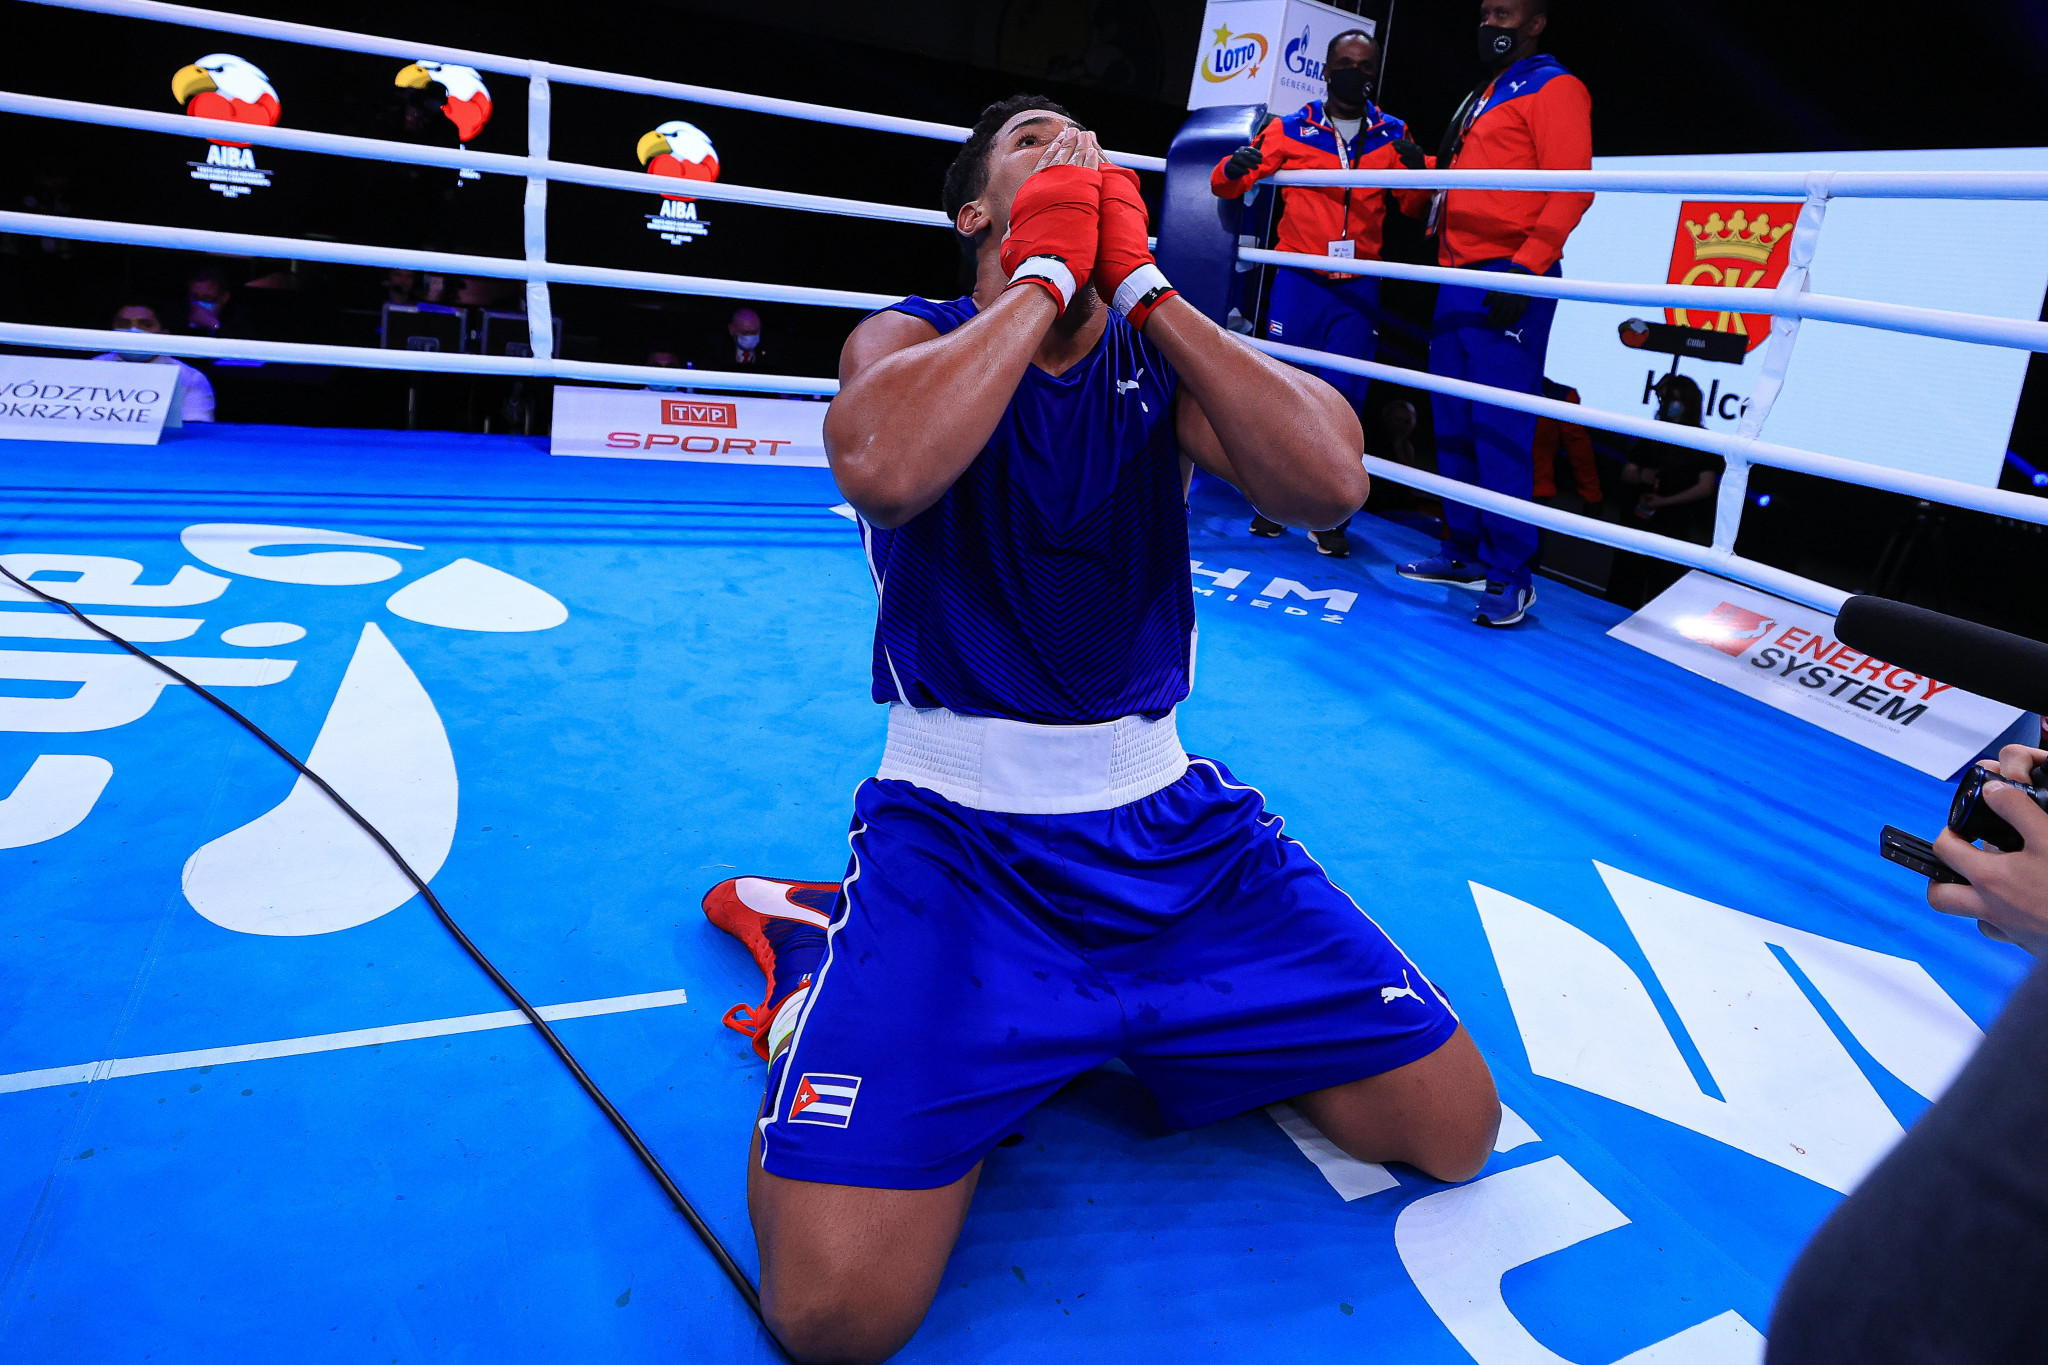 Men's finals conclude action at AIBA Youth World Boxing Championships